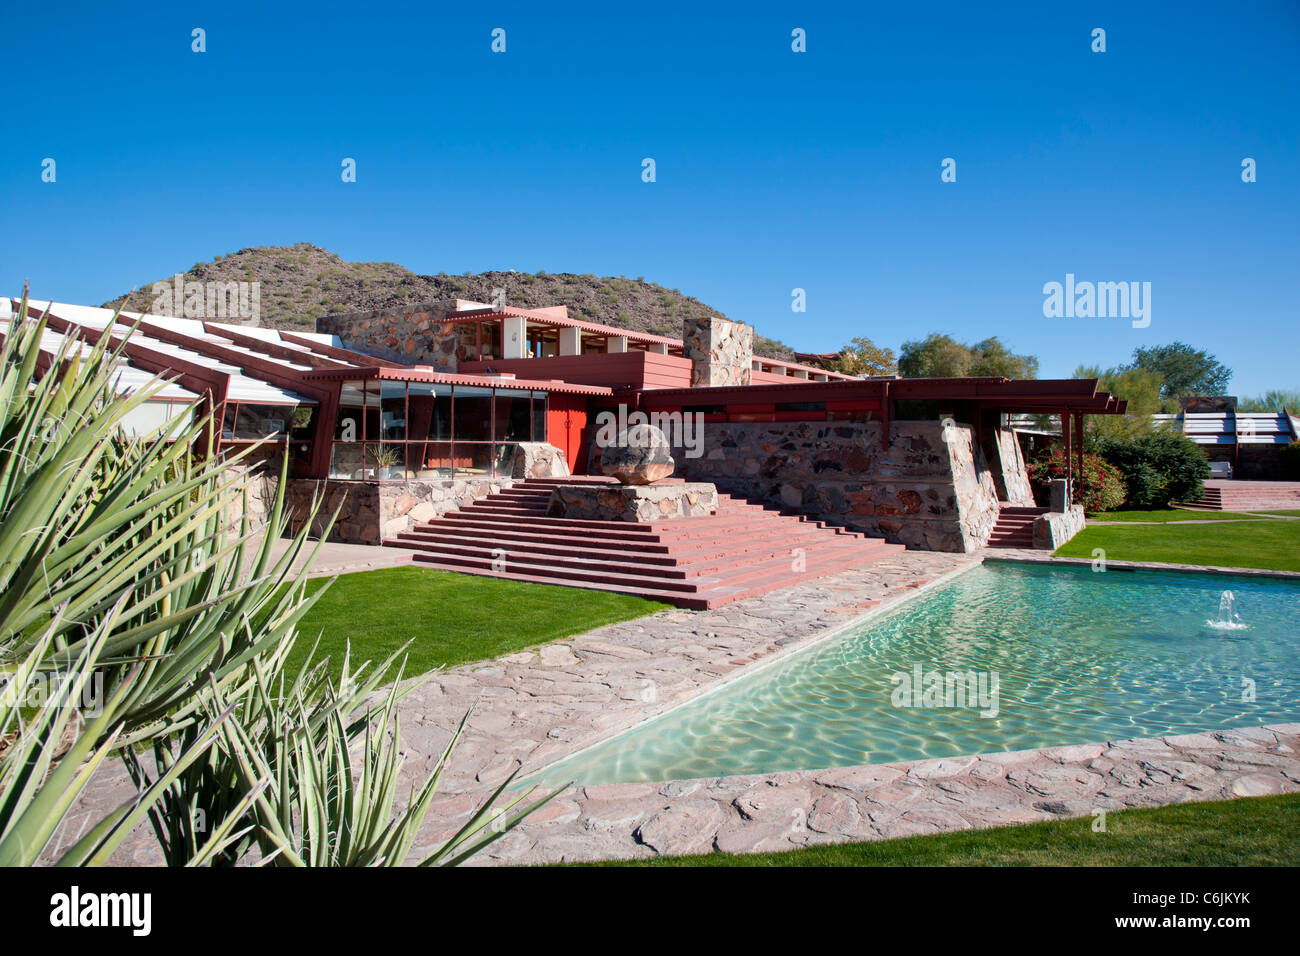 Phoenix Home Design Stock Photos & Phoenix Home Design Stock Images ...